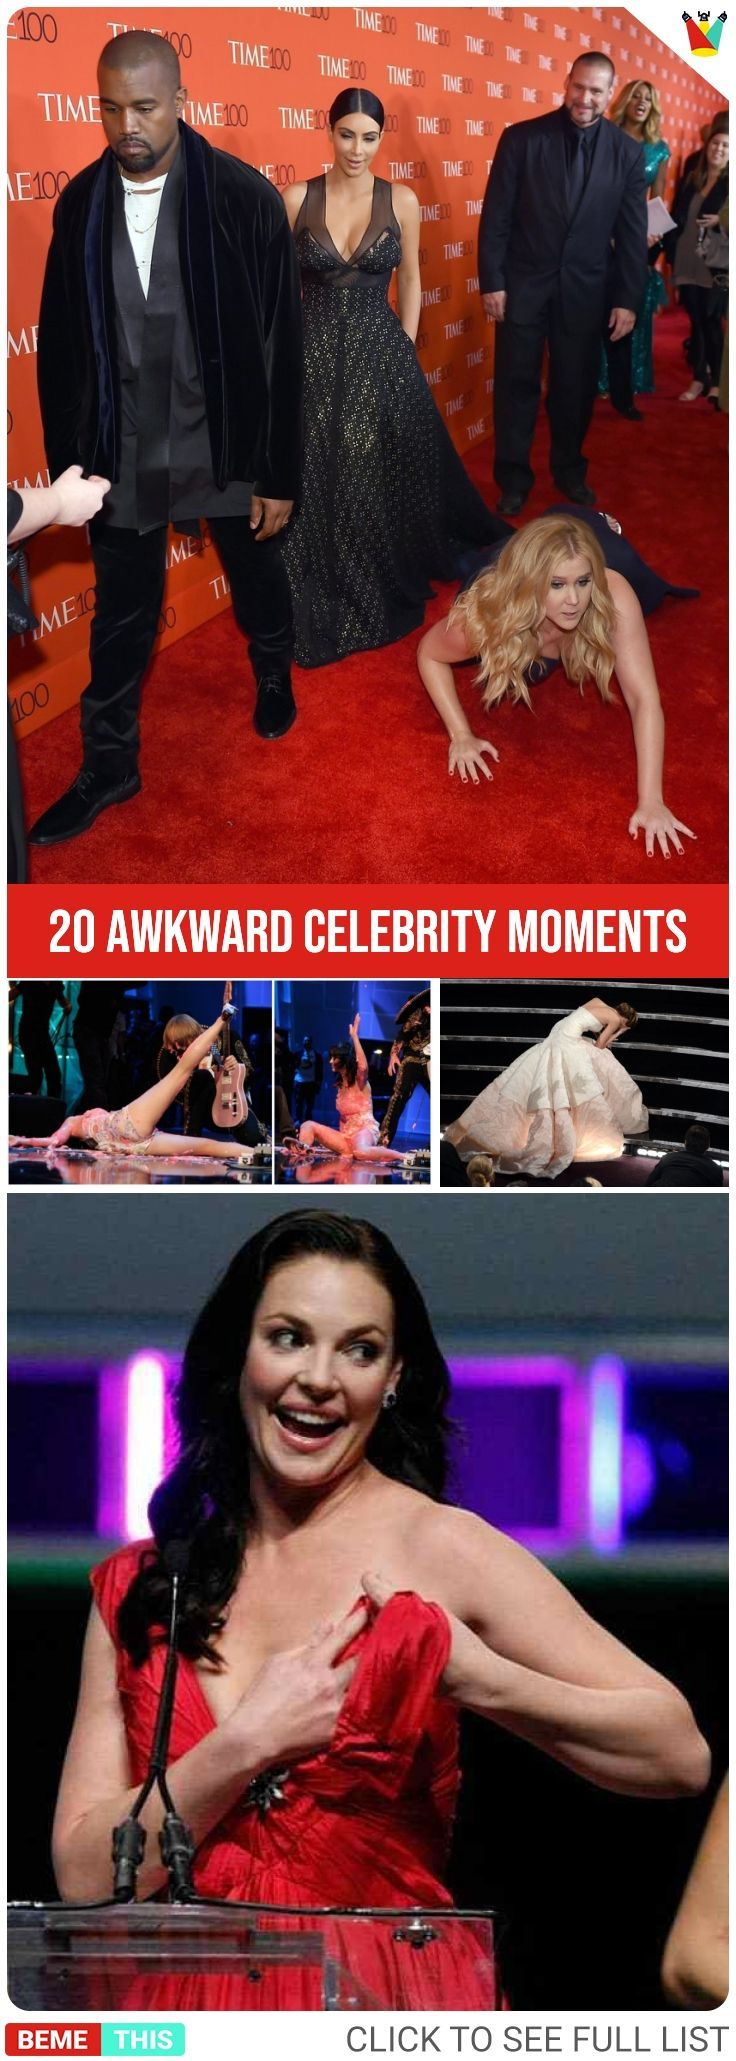 29 Best Celebrity Awkward Moments images | Celebrities ...